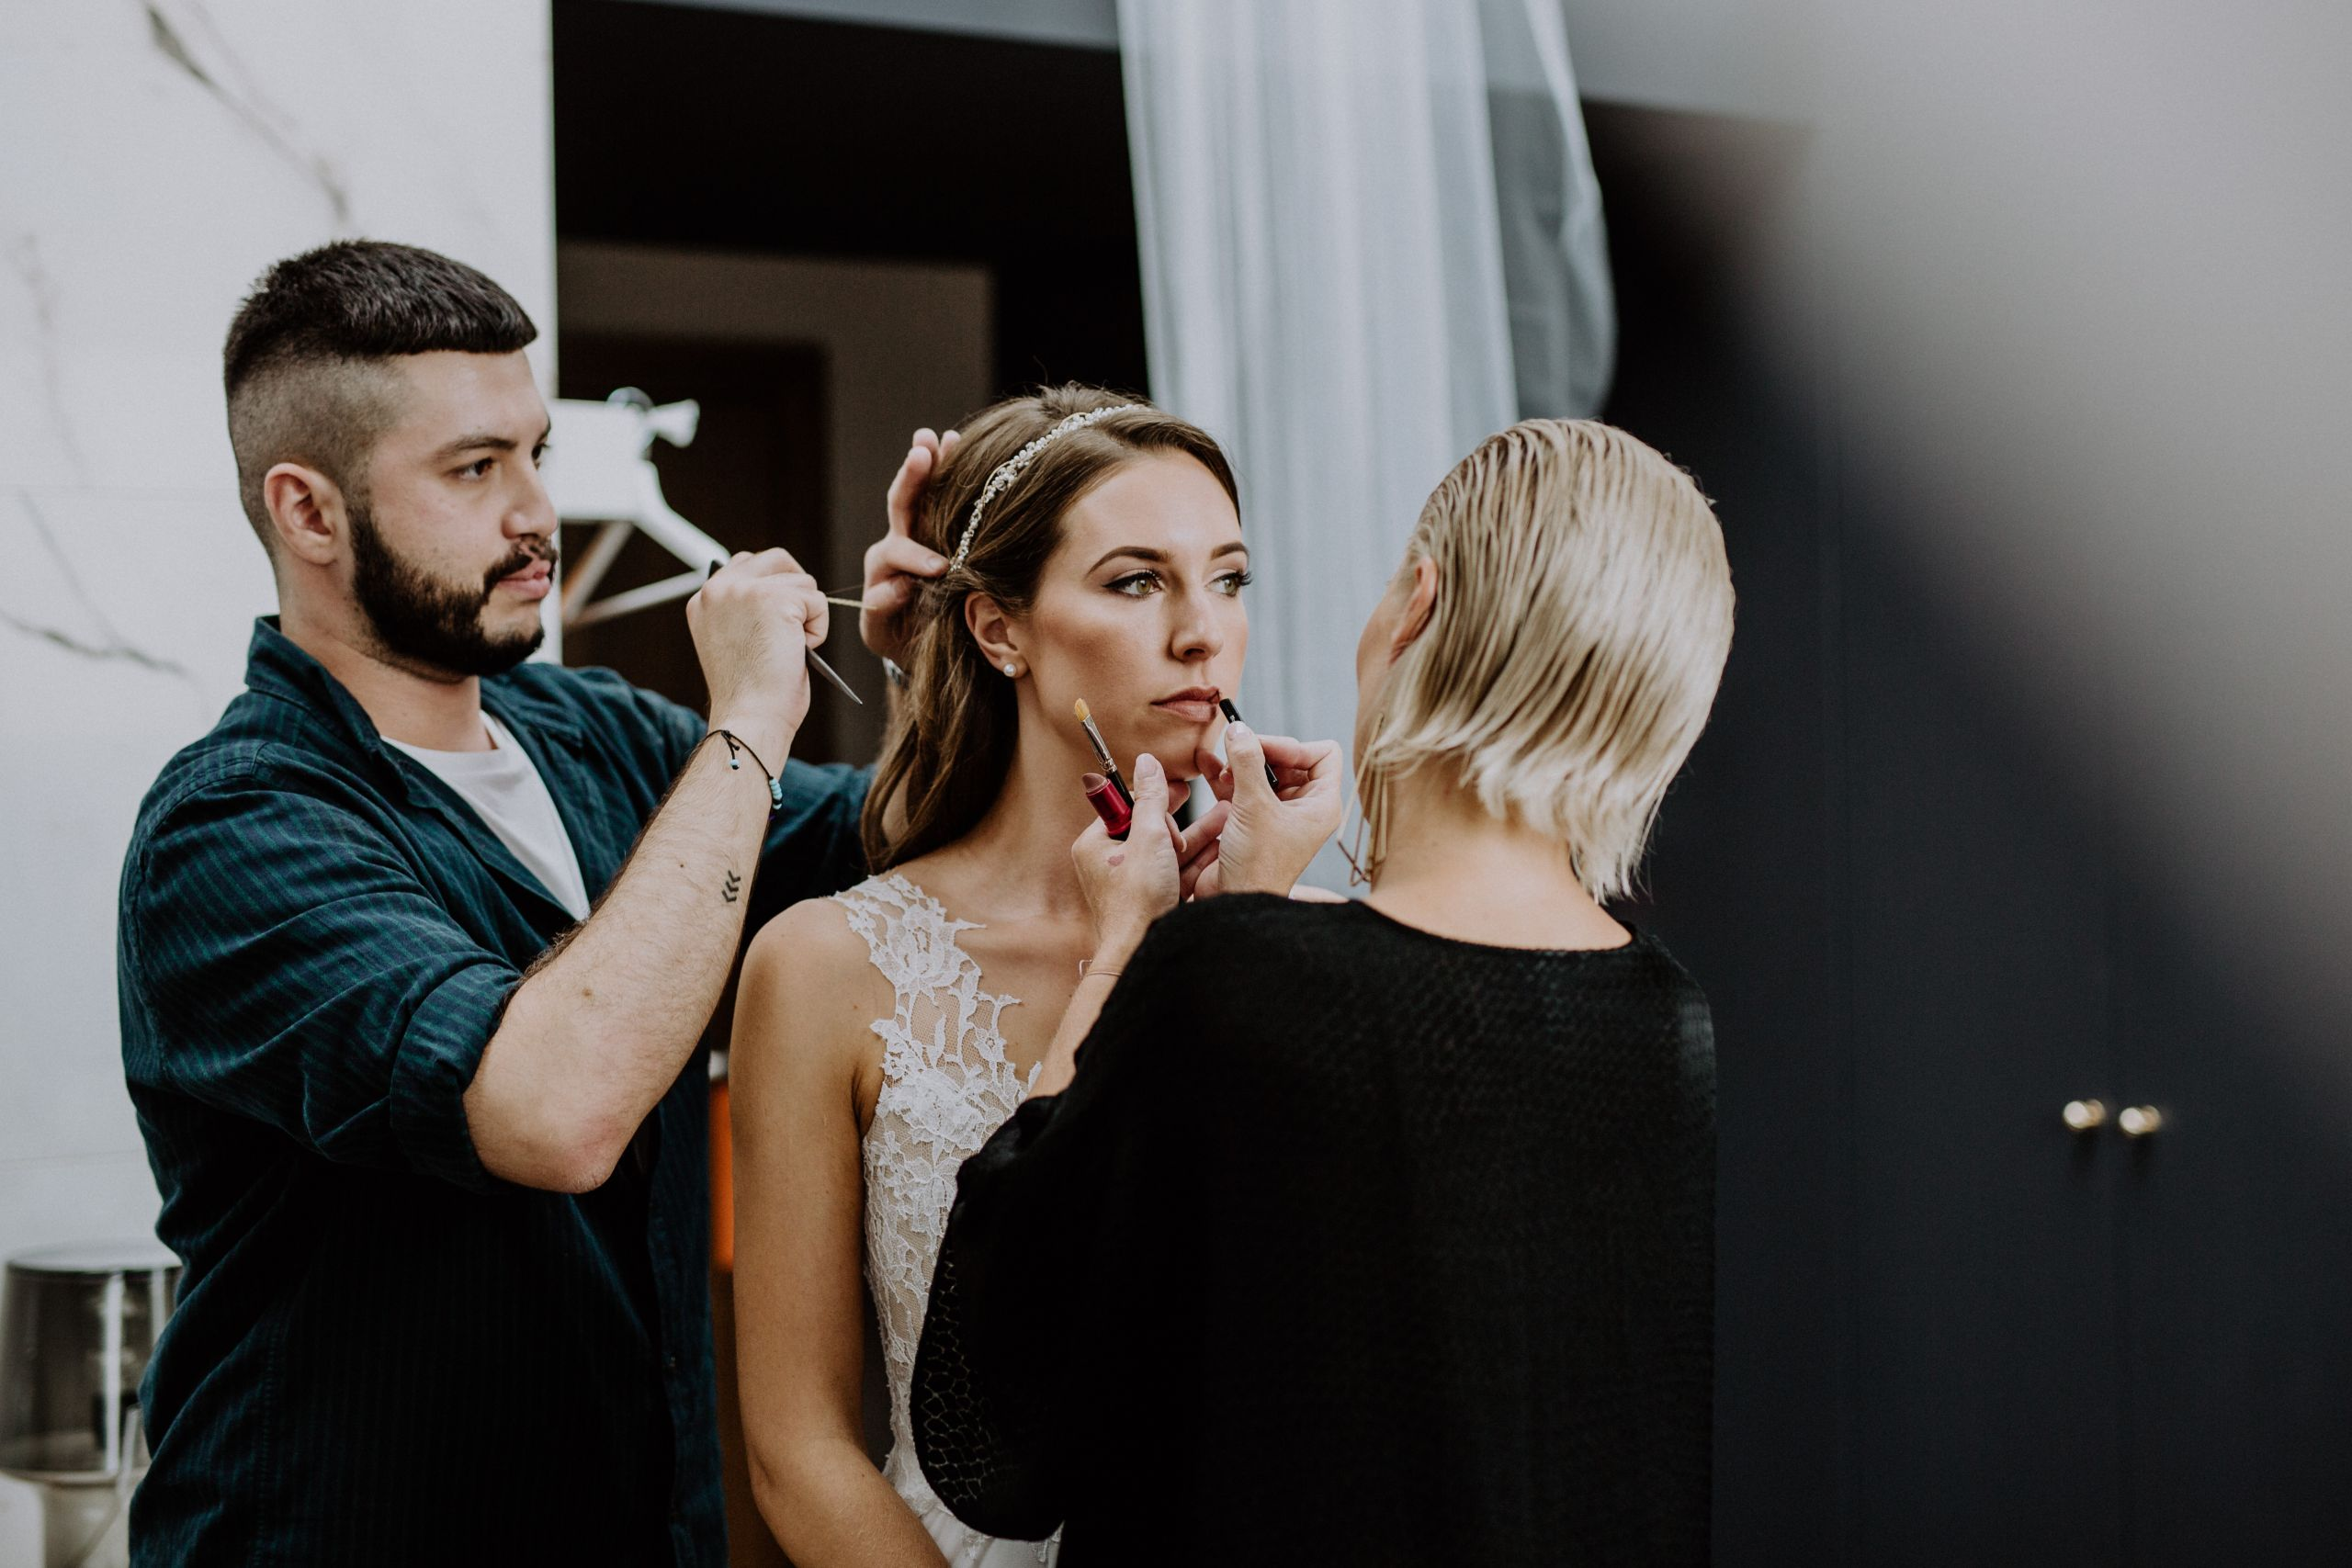 Wedding Hair & Make-Up Artists In Austria - The Daily Dose